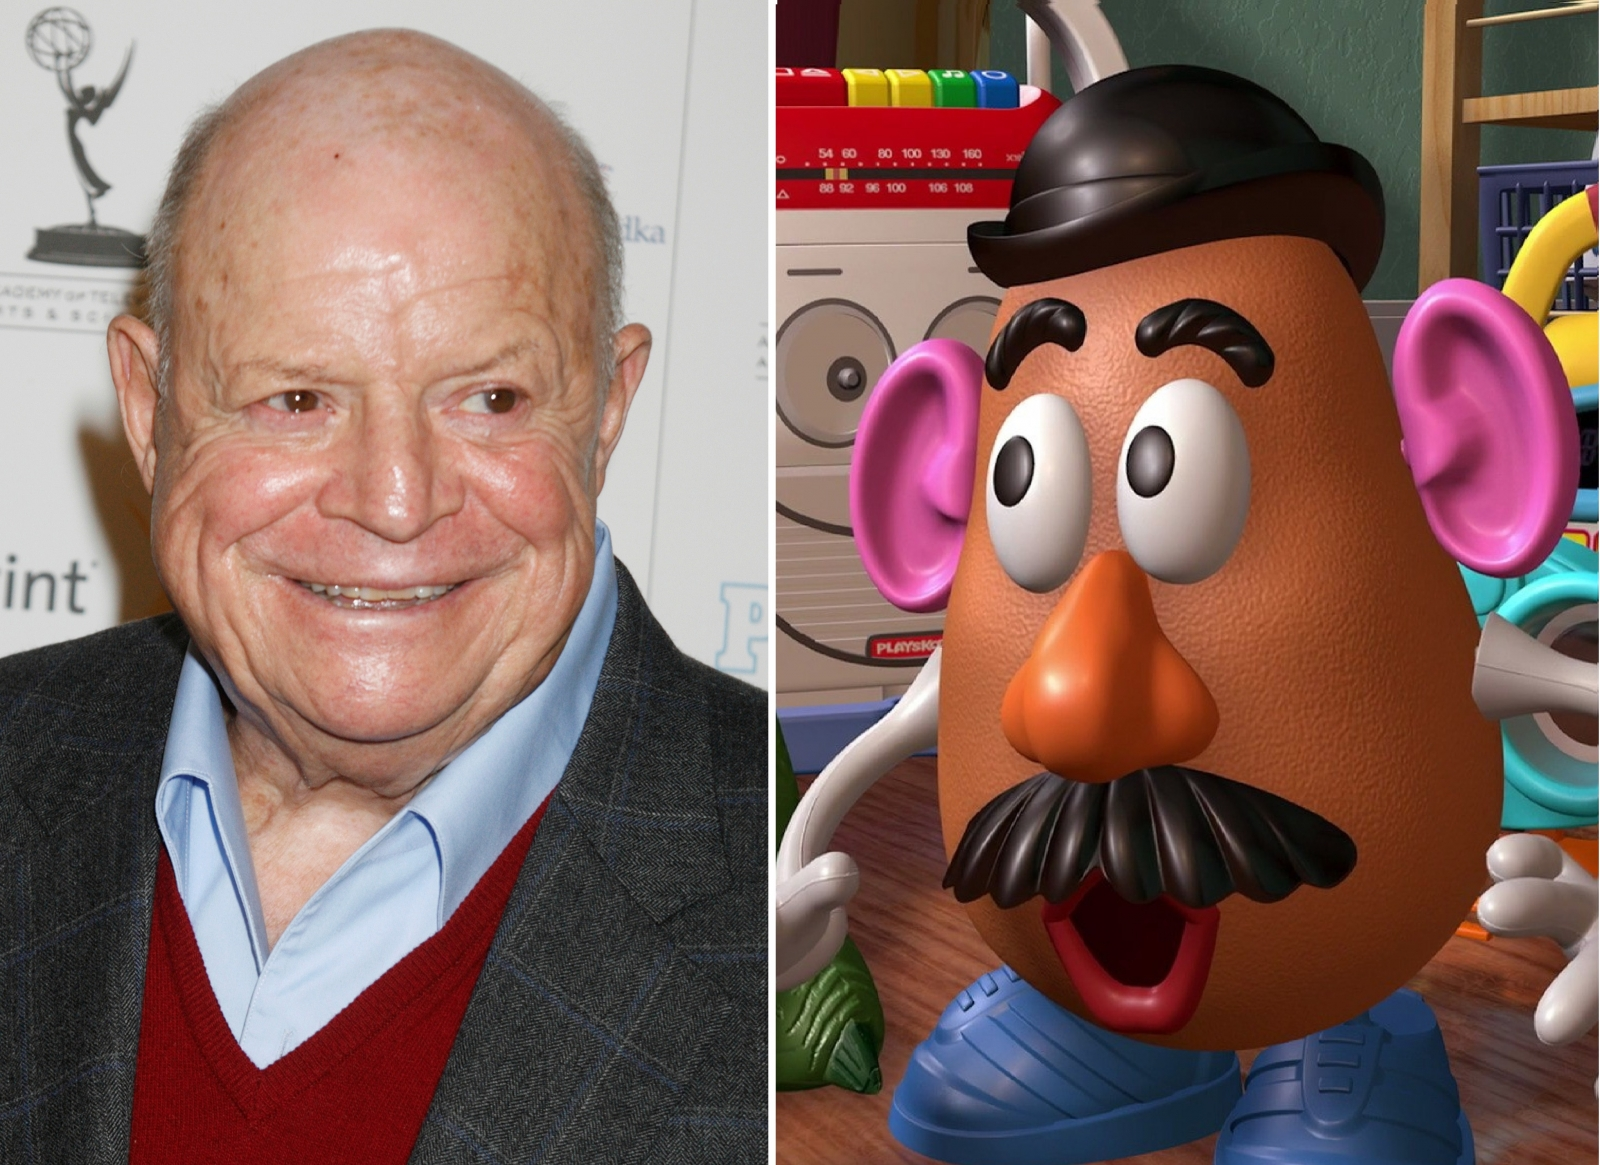 Don Rickles died before Toy Story 4